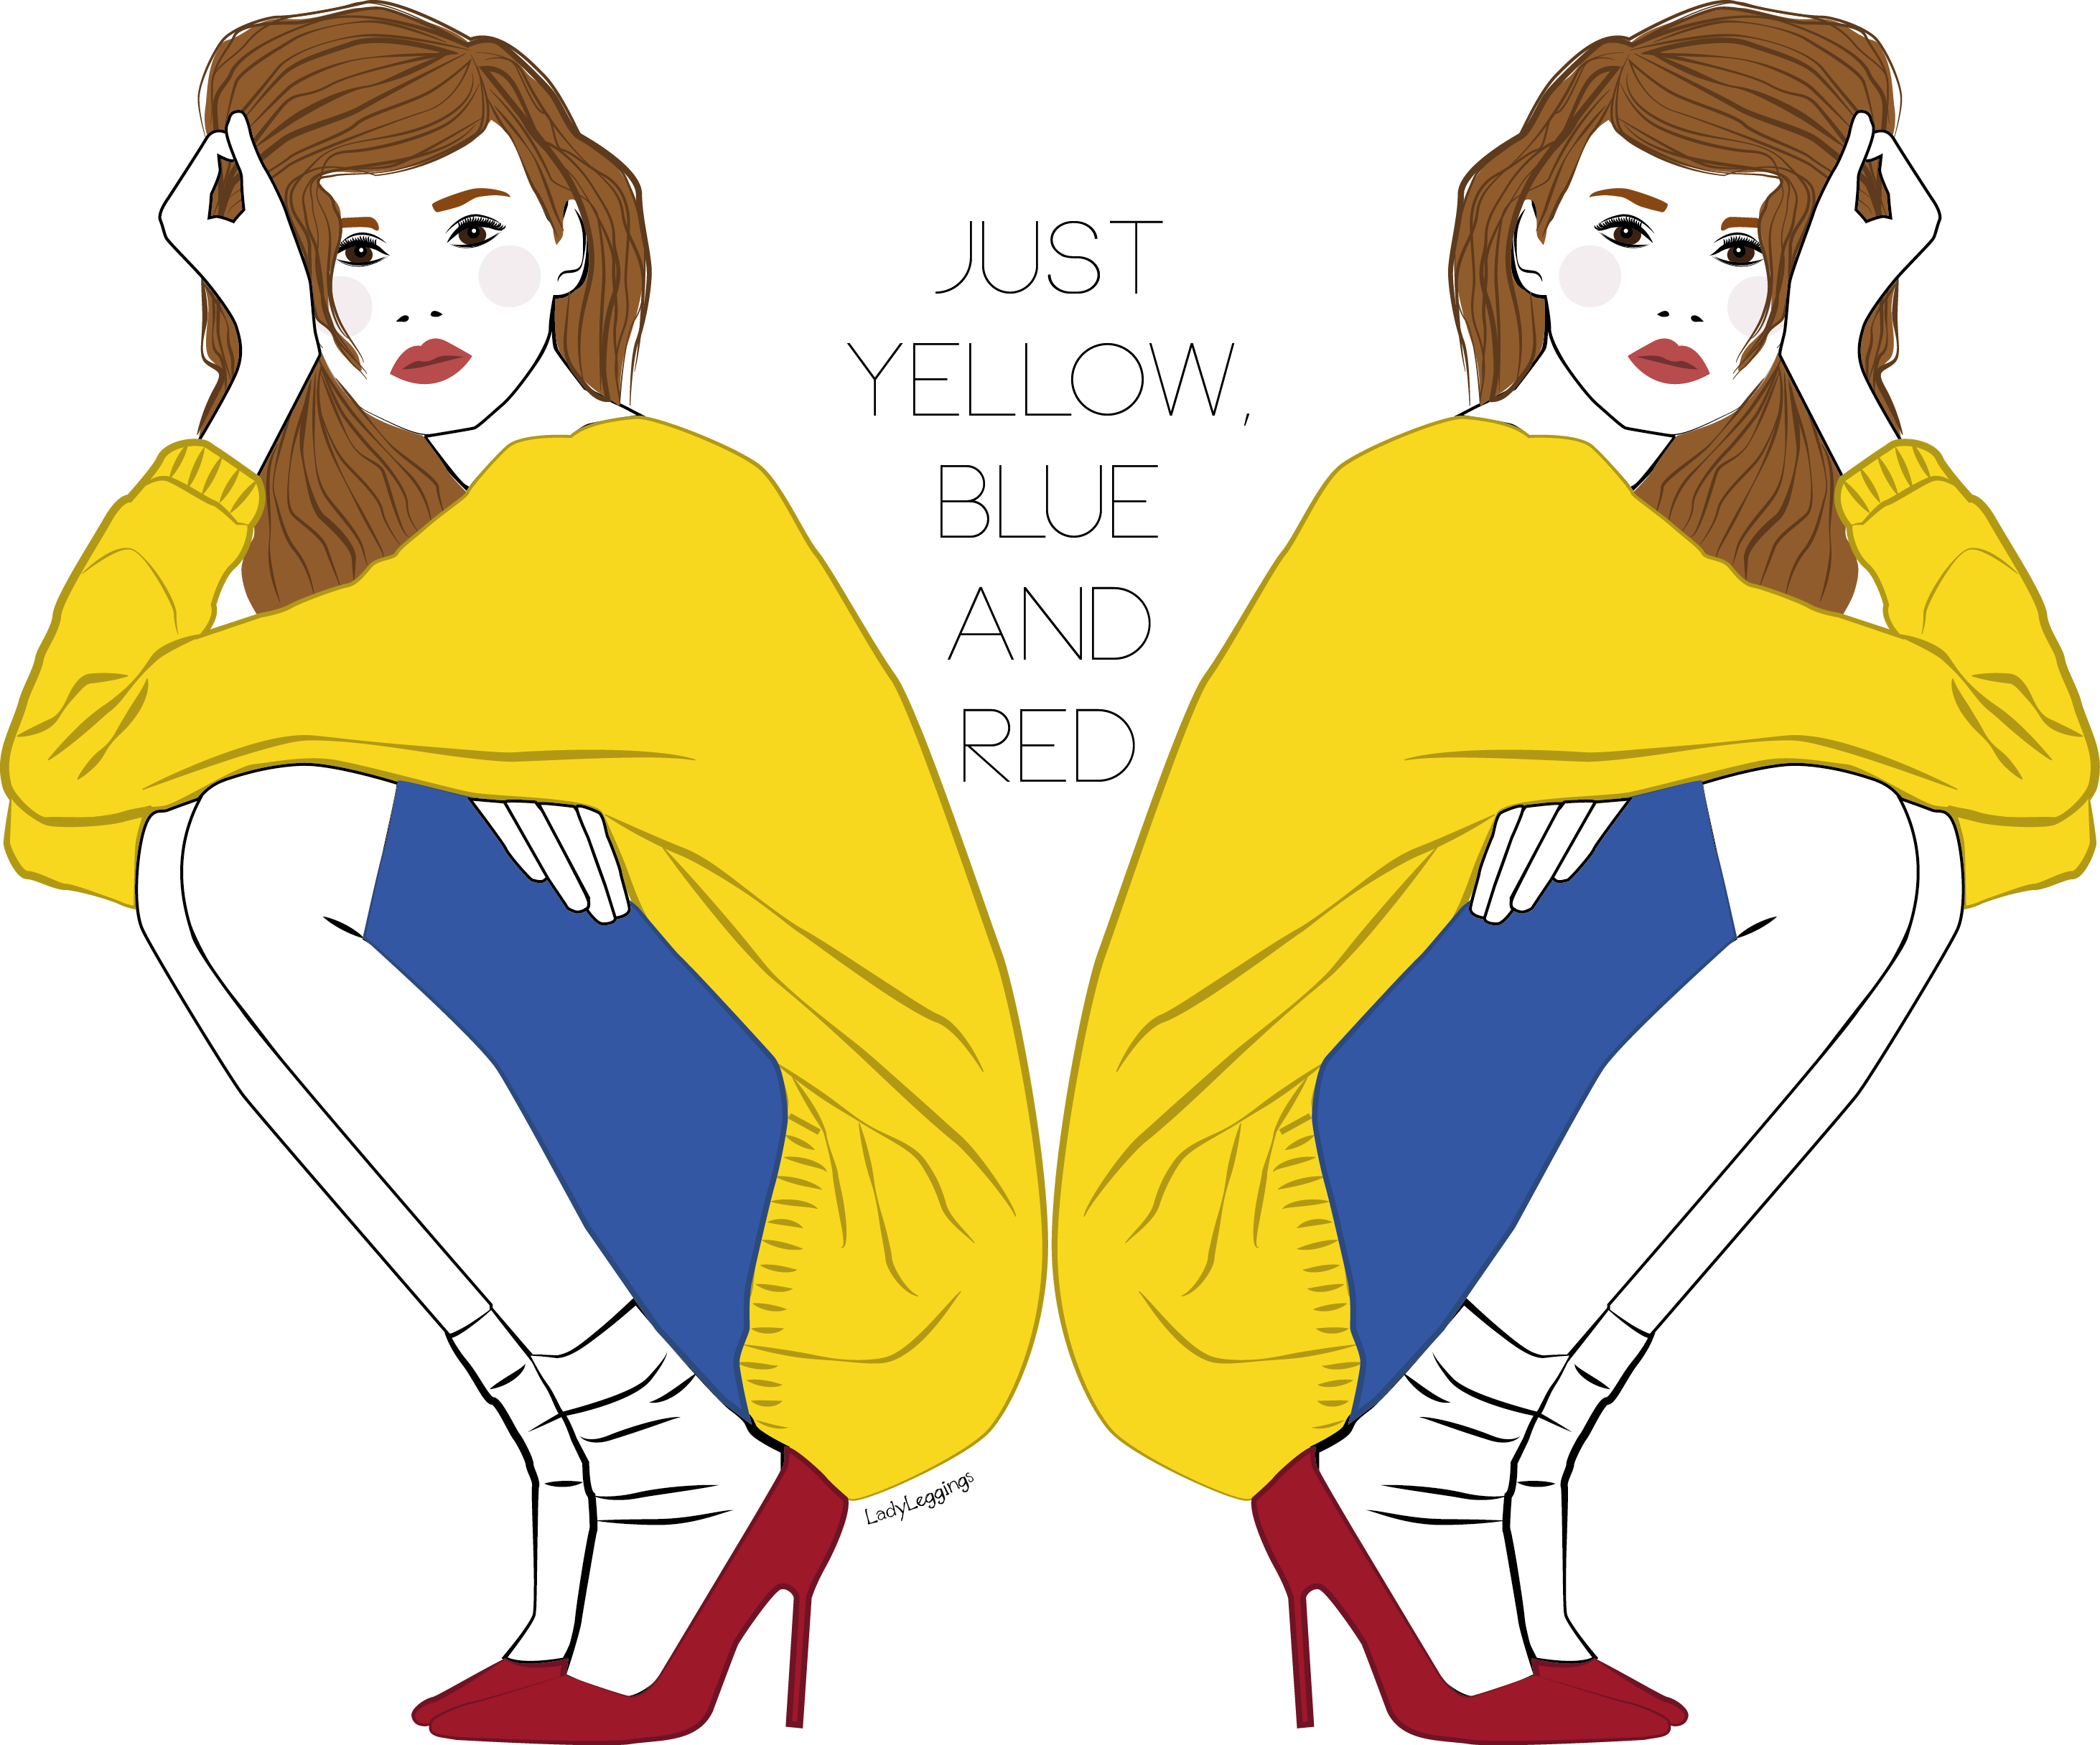 JUST YELLOW, BLUE ANDRED!